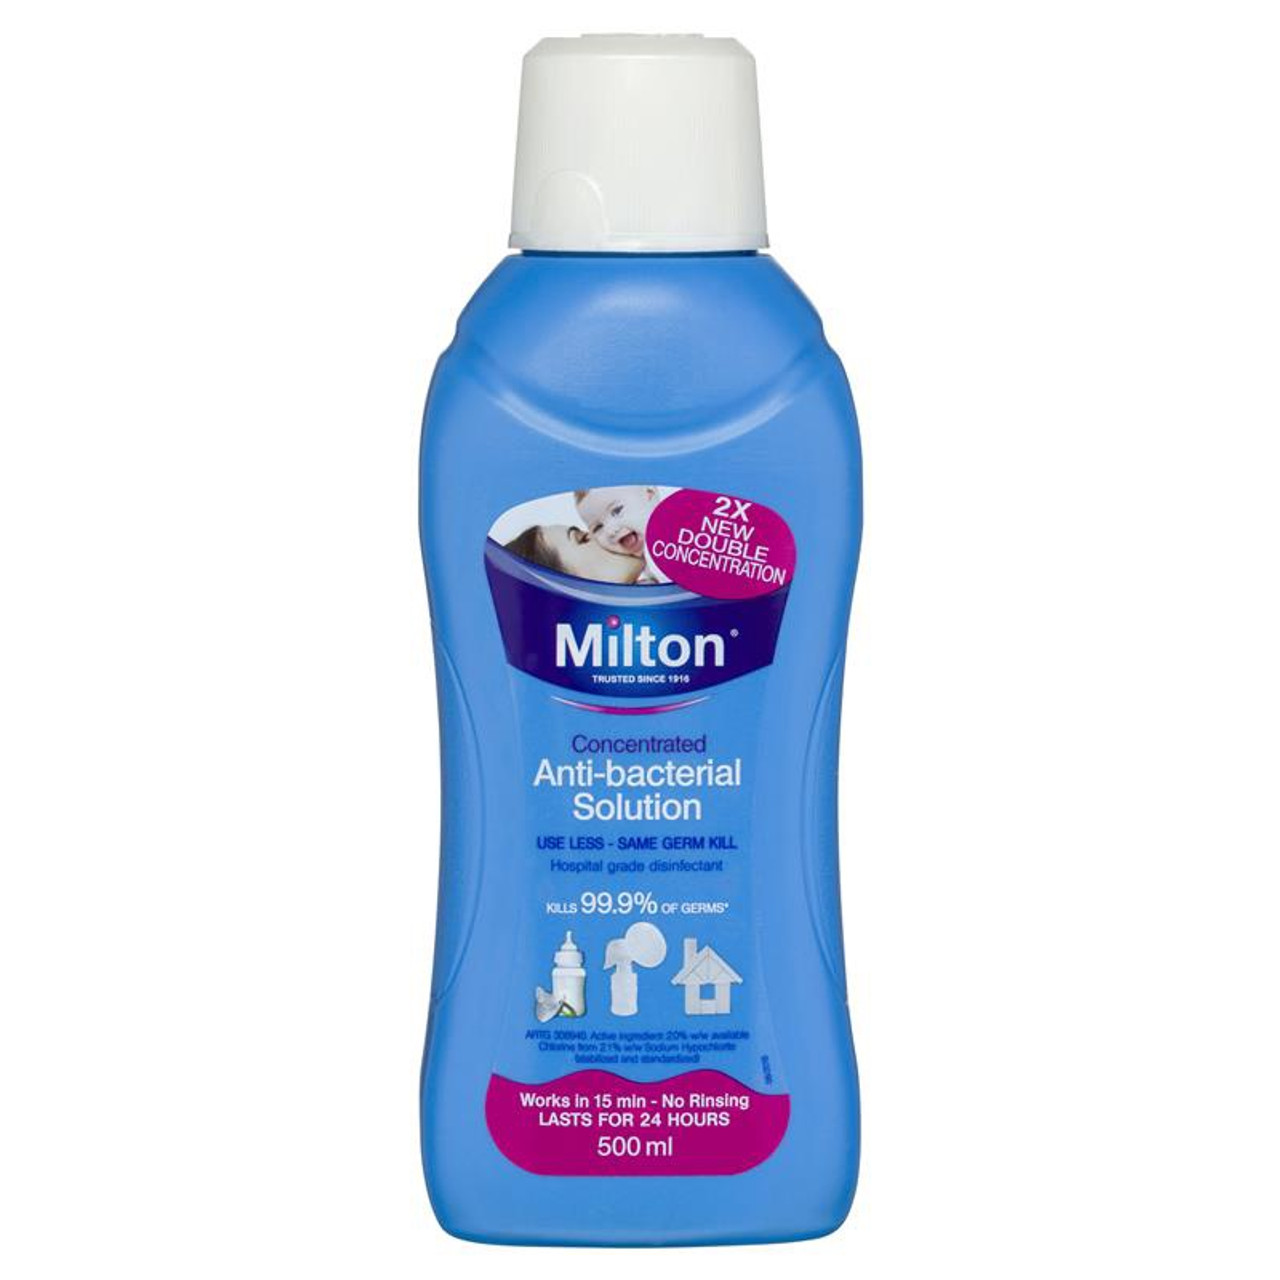 Milton Concentrated Anti-Bacterial Solution 500ml at Baby Barn Discounts Milton Concentrated Anti-Bacterial Solution is a hospital-grade disinfectant that kills 99.9% of germs.